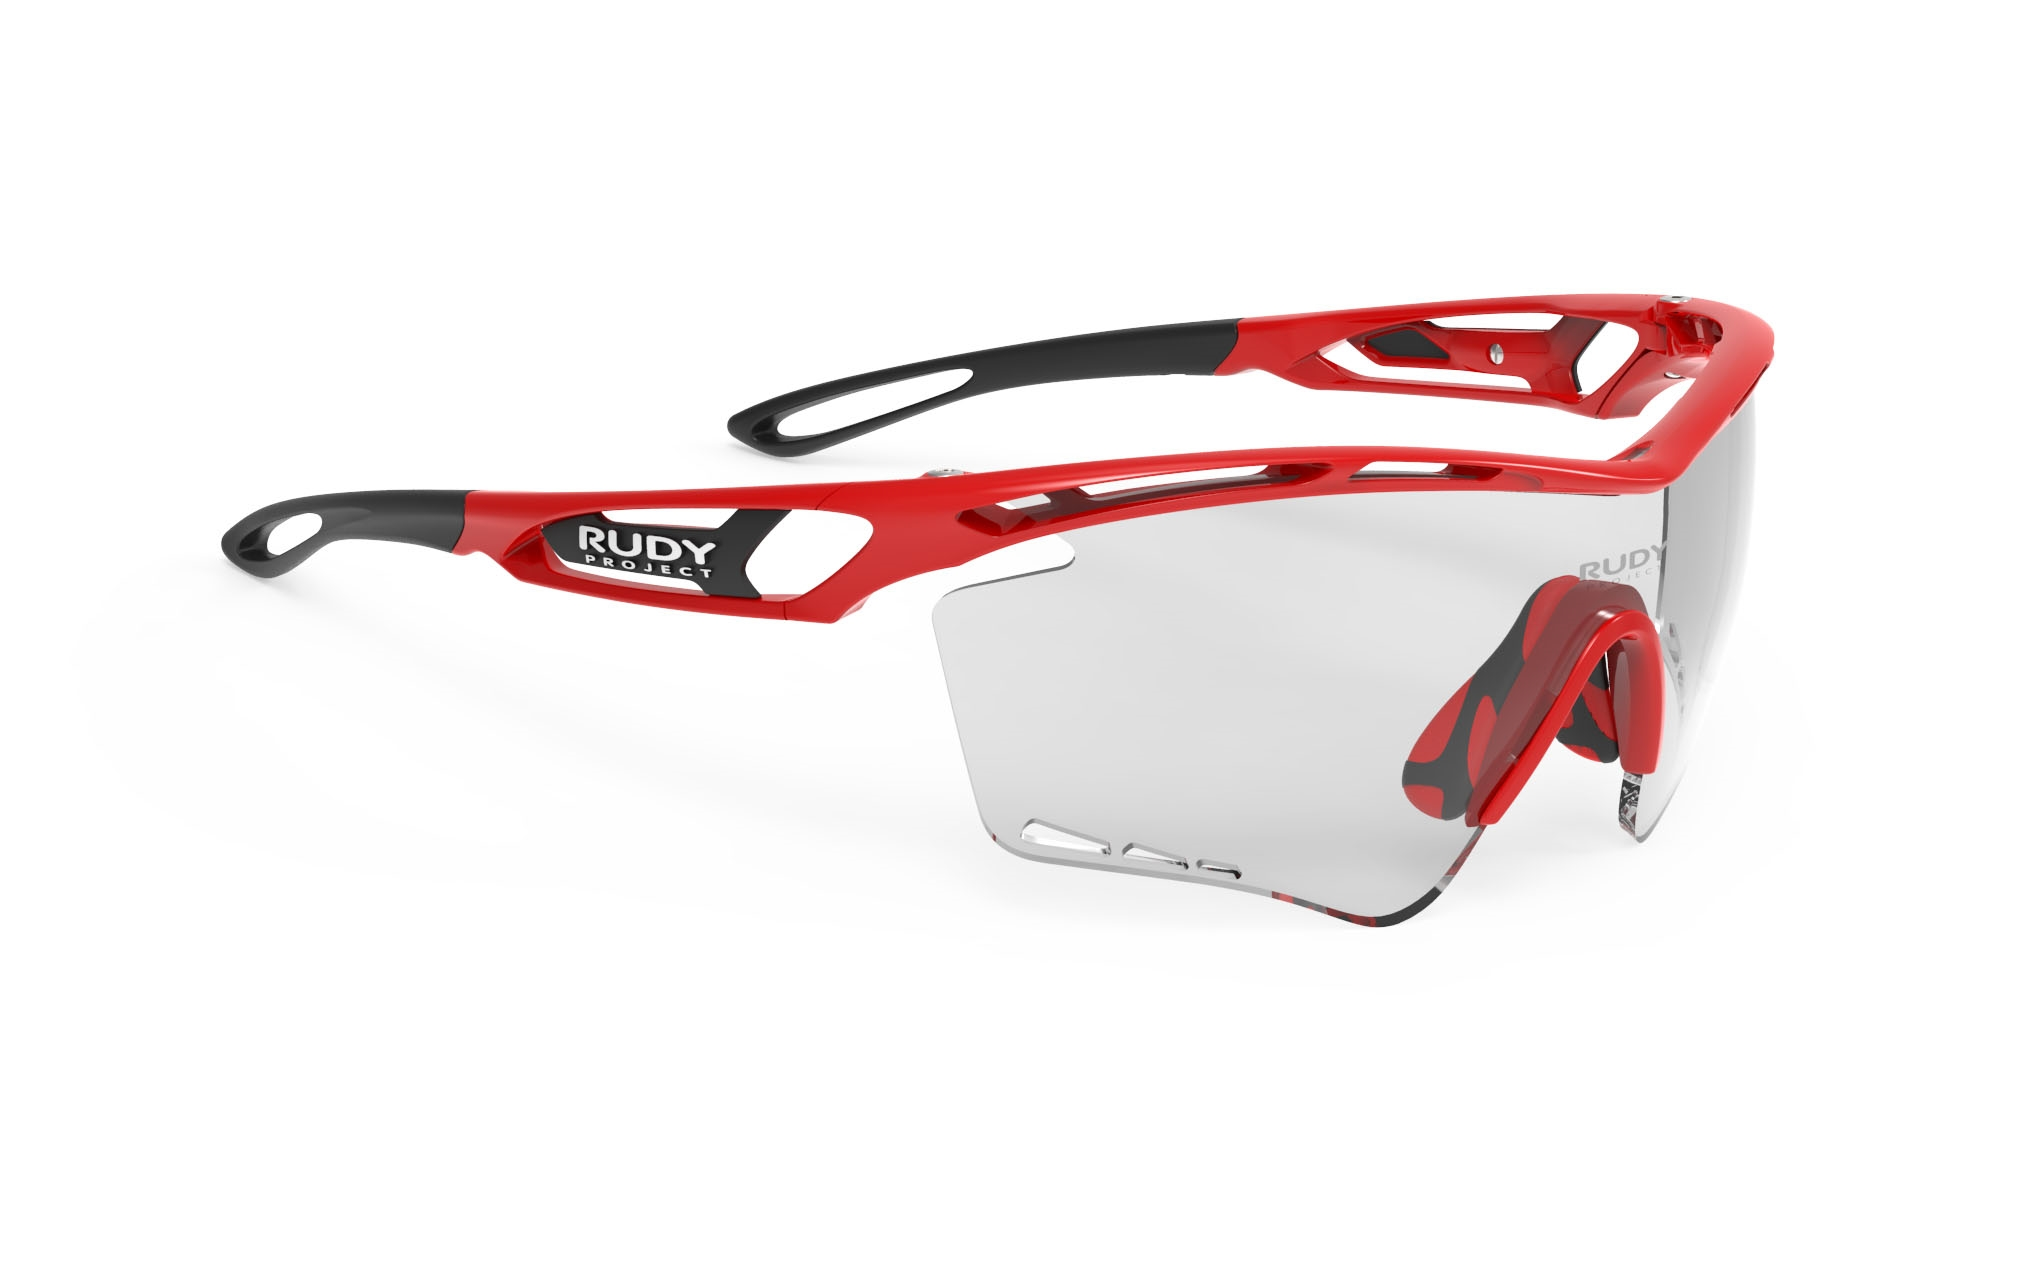 Lunettes de performance Tralyx XL - Rudy Project 905a3113ad46